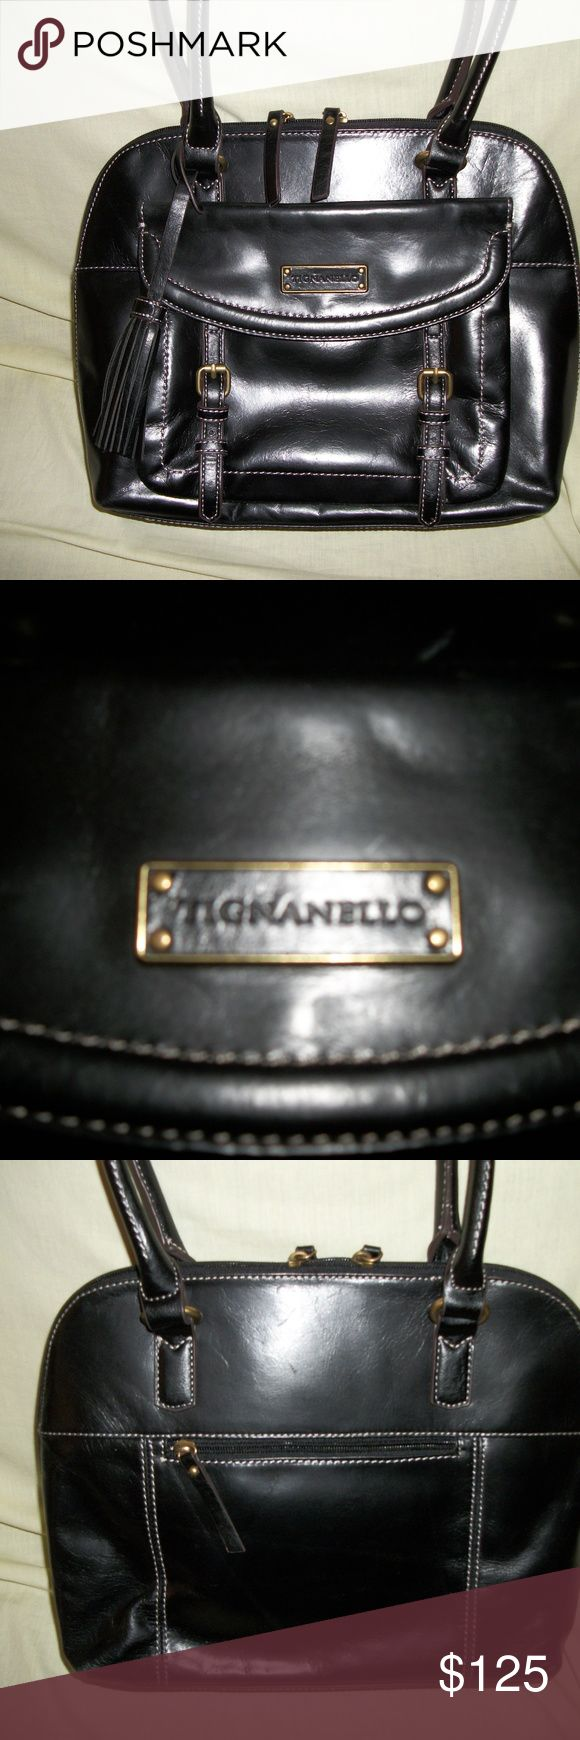 Tignanello Handbag 100% real leather, has 2 outside pockets (backside has zipper, front side has magnetic catch),  5 inside sections plus 2 pockets on one side and zipper compartment on other side (middle section has a zipper) and 4 stud feet on bottom.  I used this handbag one time. . .just like brand new!! This is a beautiful Tignanello handbag!  It also has RFID protection. Dimensions:  11 inches high                          14 inches wide                          4 inches deep (expends…